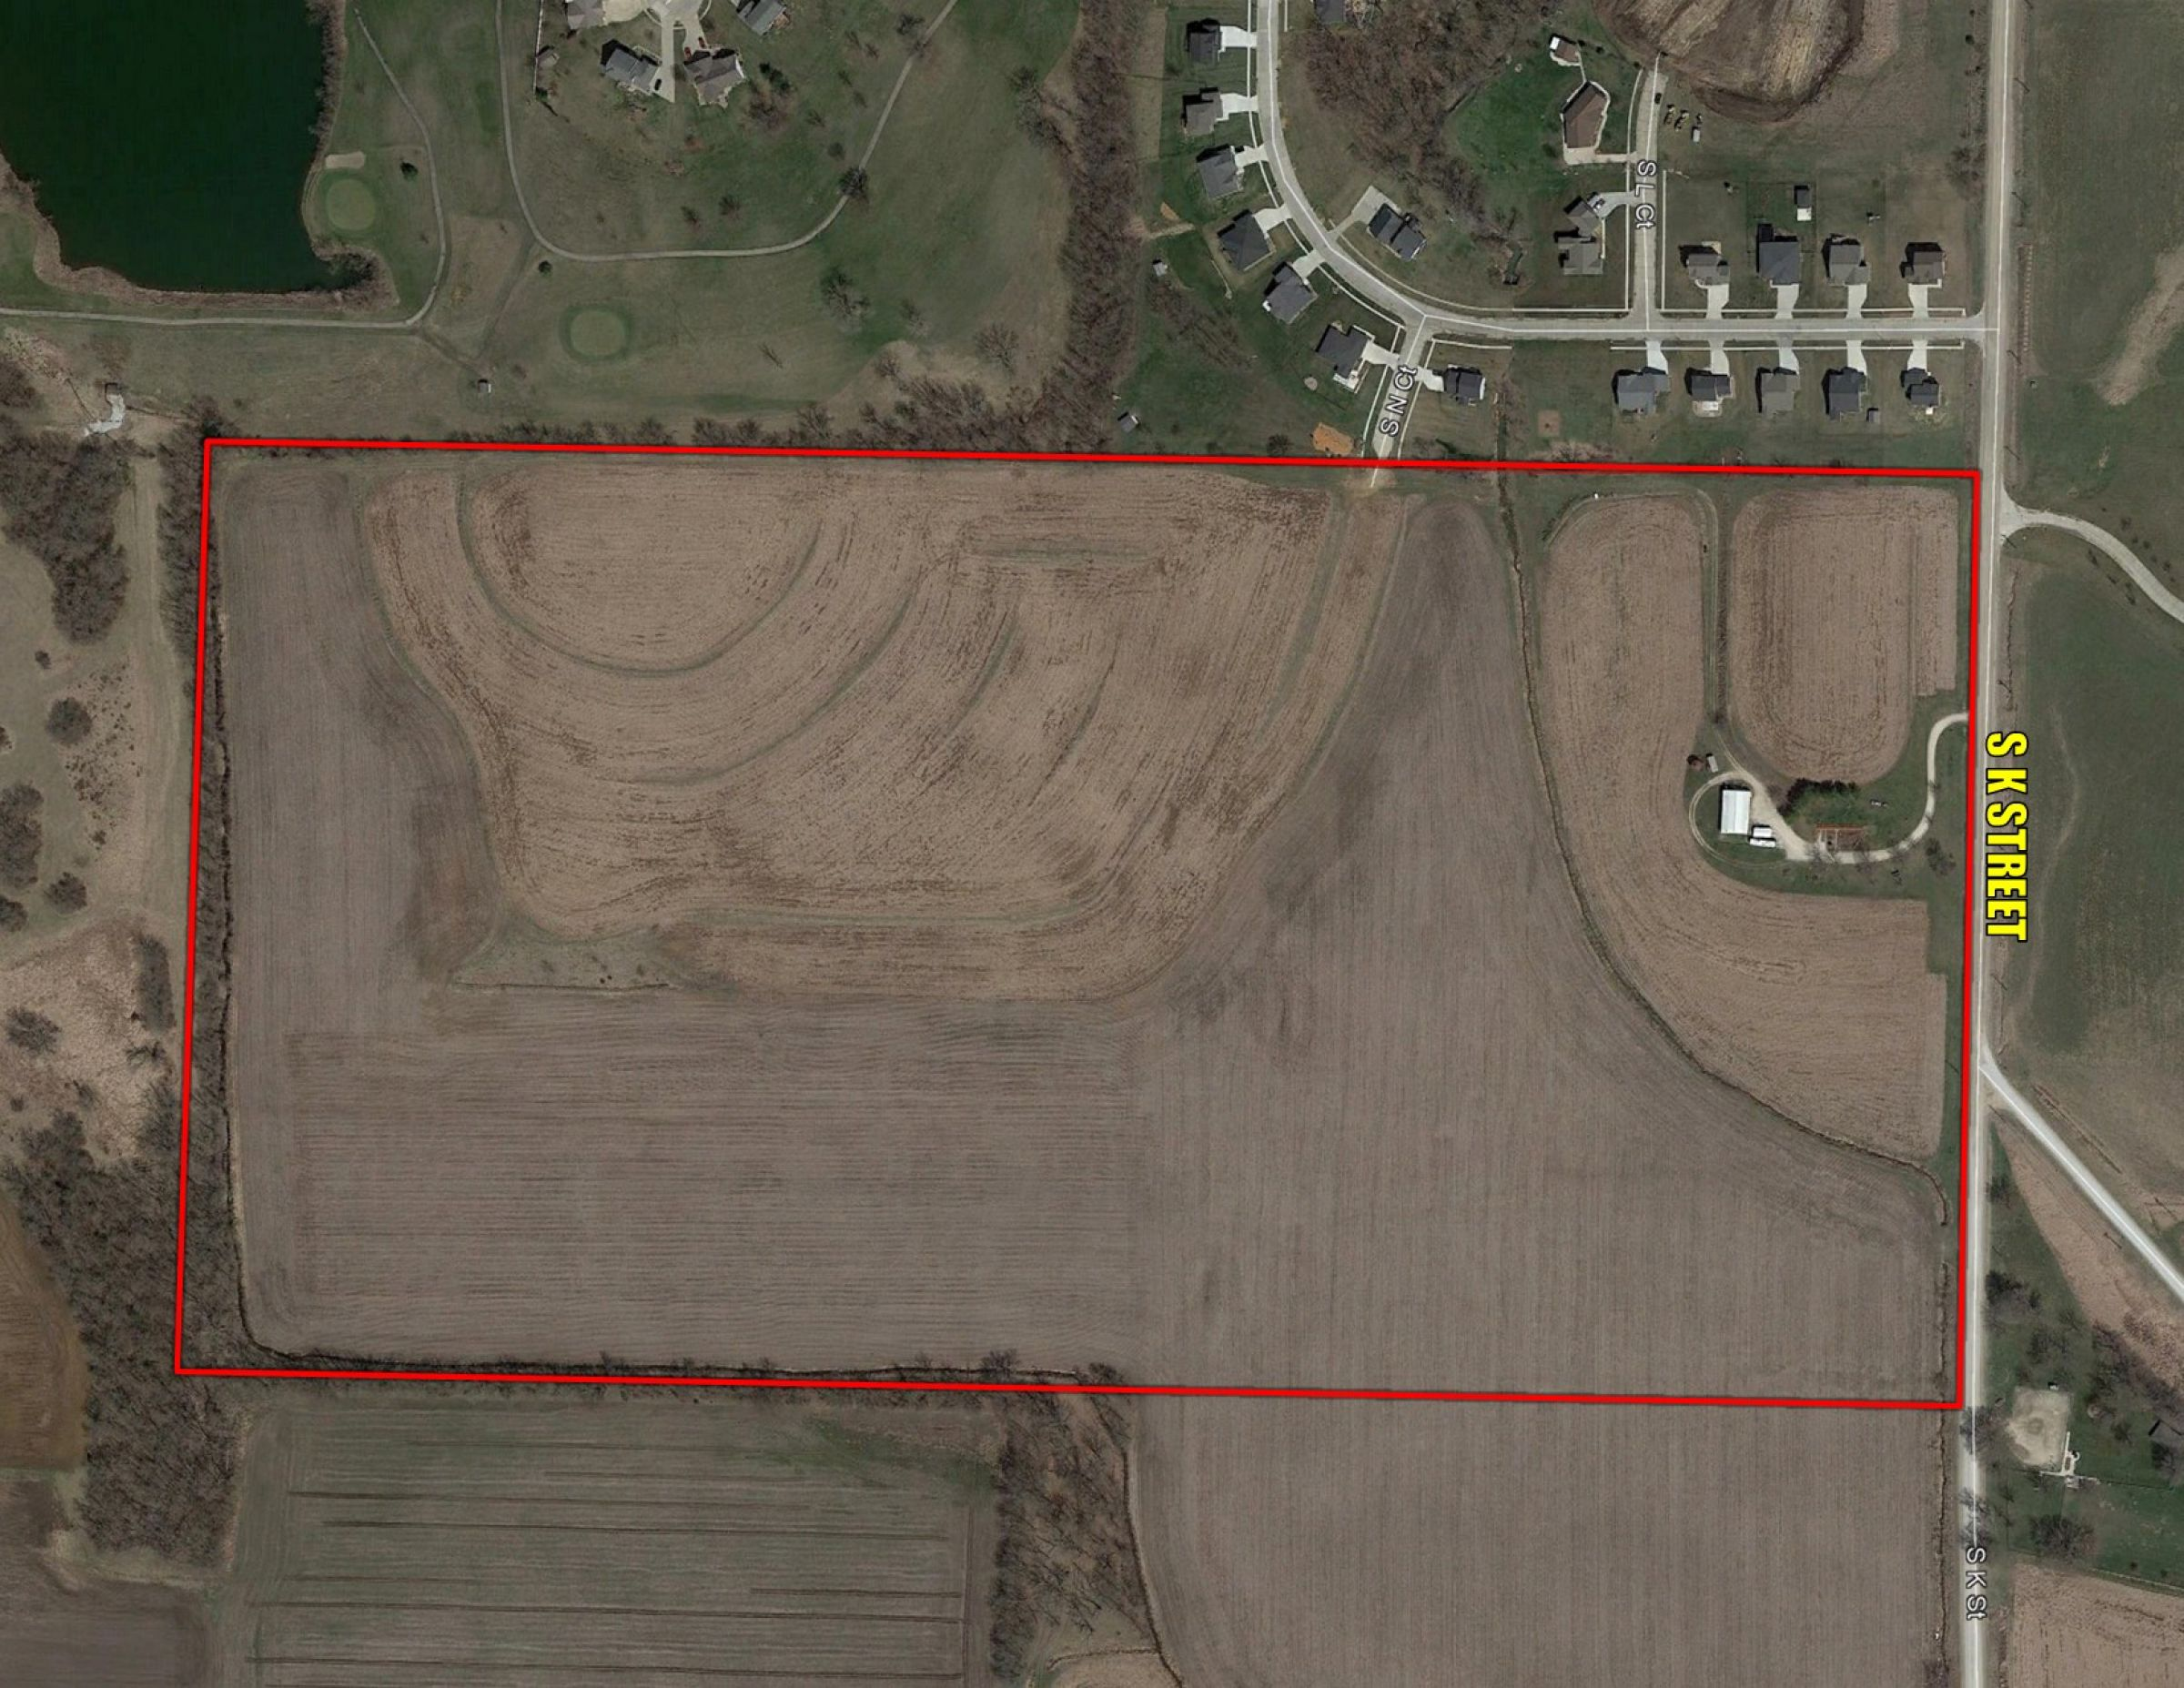 development-land-warren-county-iowa-80-acres-listing-number-15464-2-2021-04-15-232751.jpg